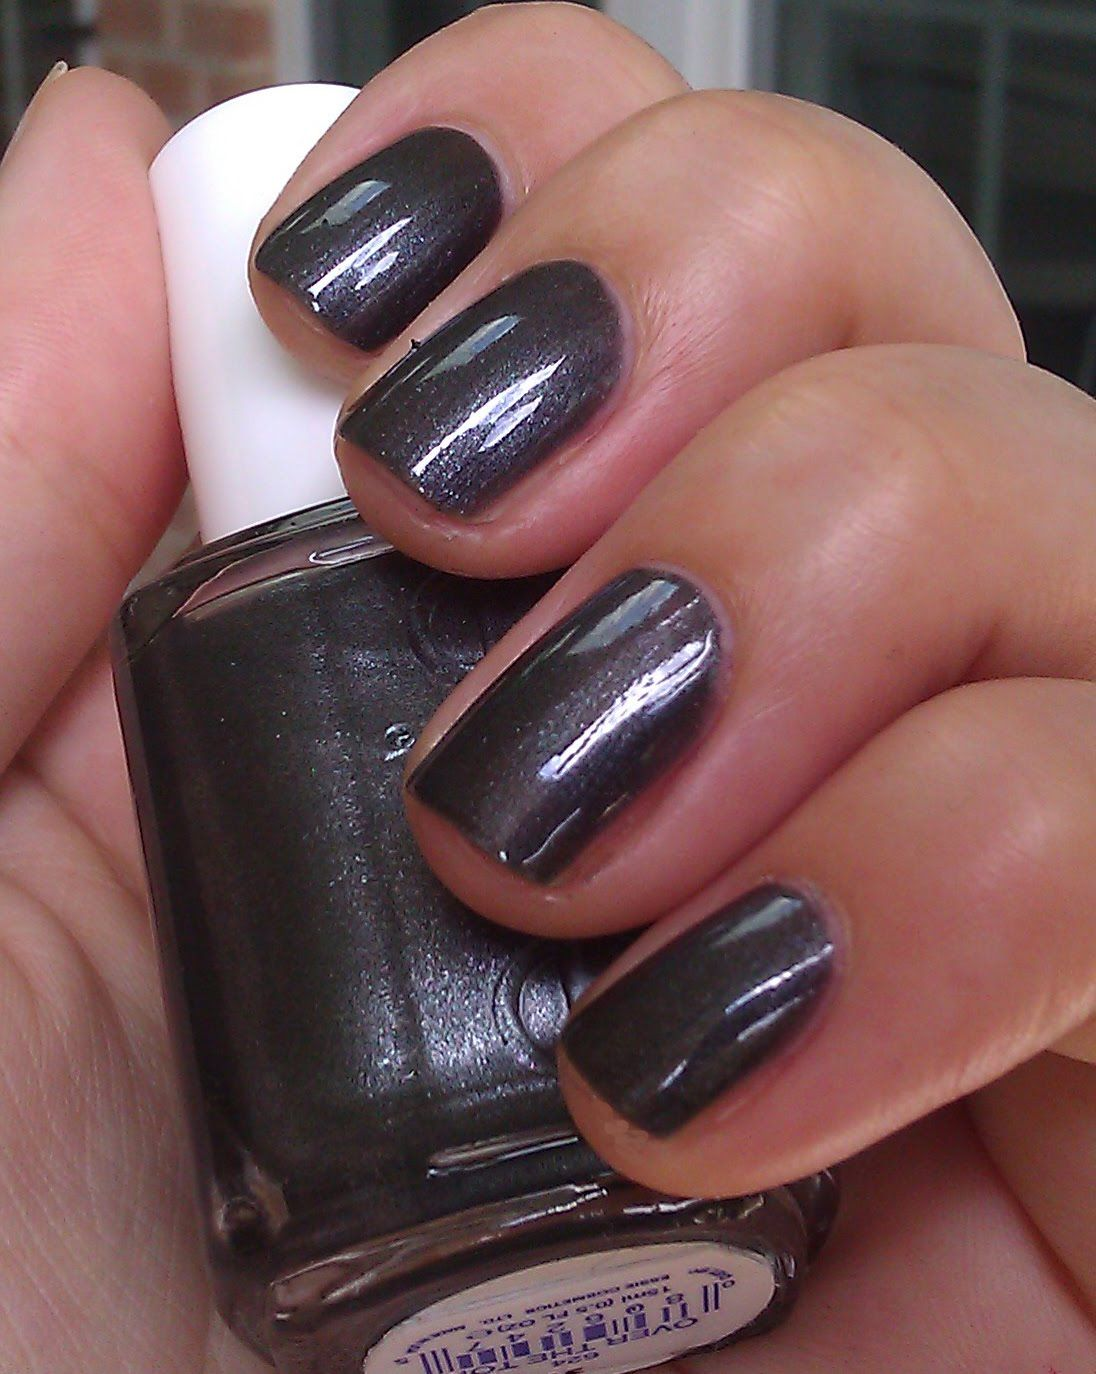 essie over the edge | obsession! | Pinterest | Essie polish, Makeup ...